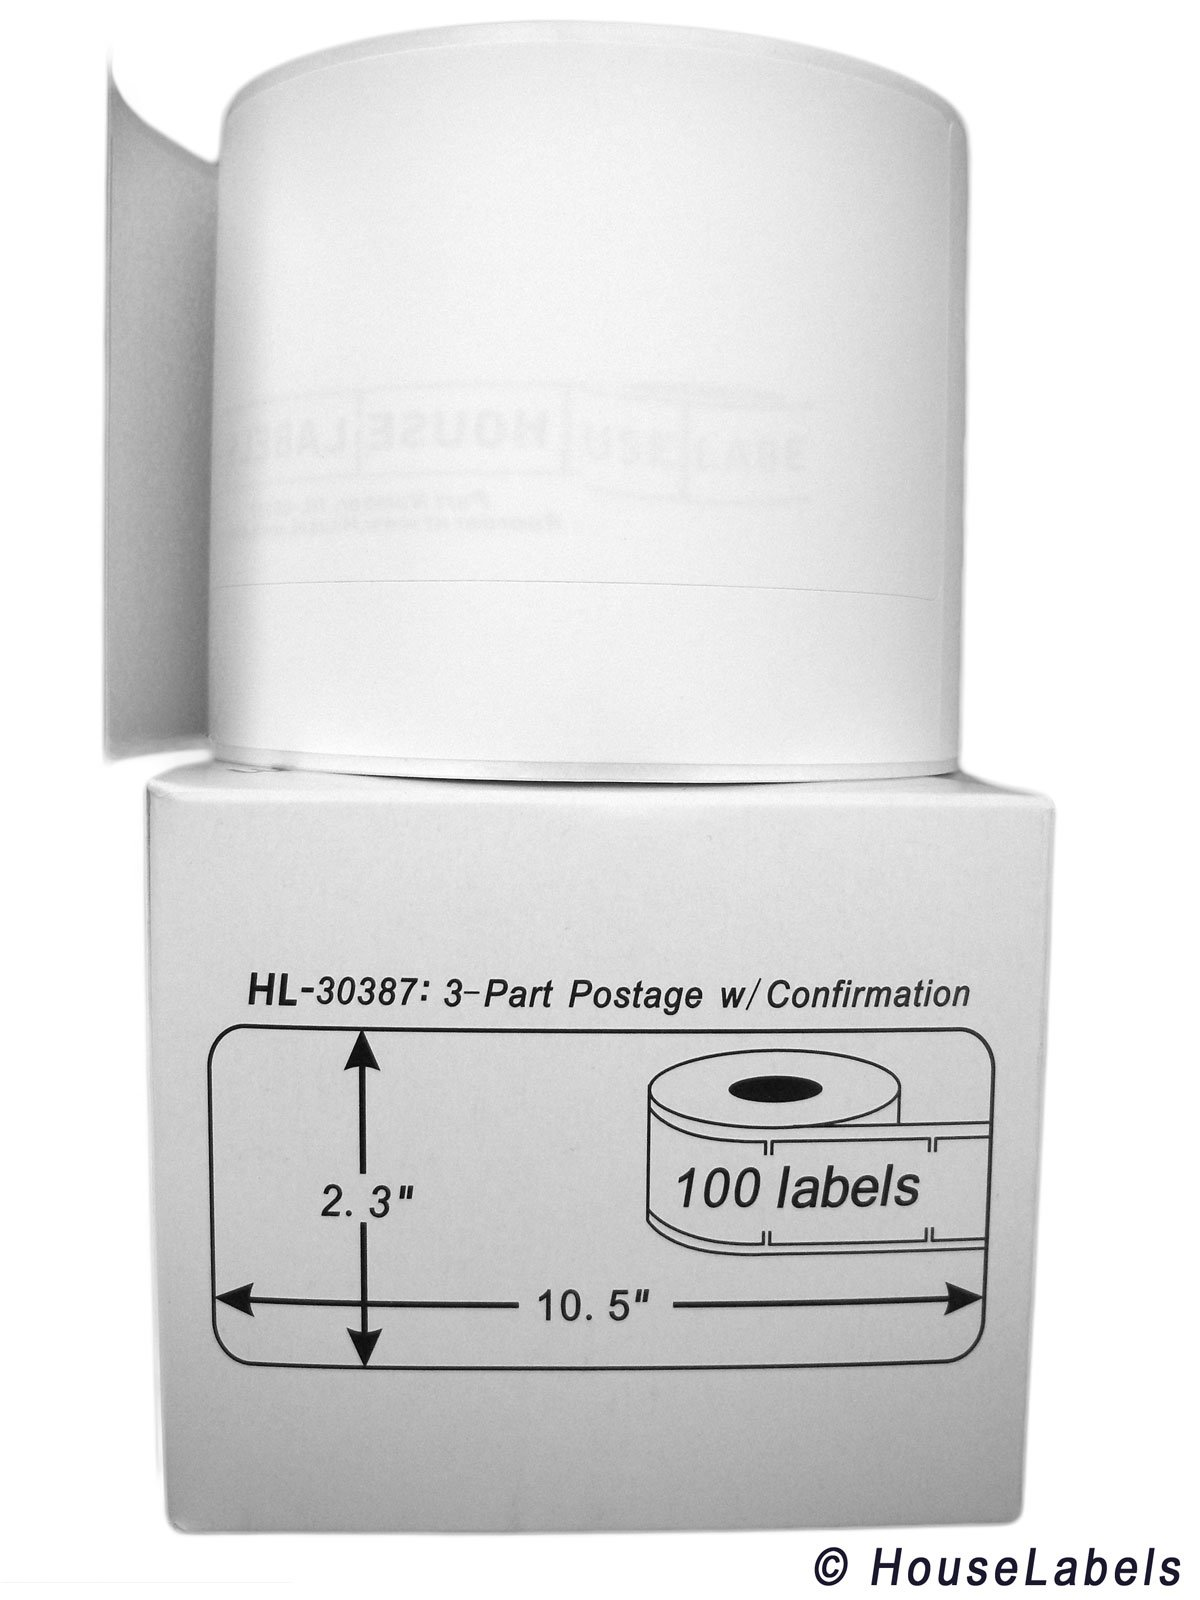 25 Rolls; 100 Labels per Roll of DYMO-Compatible 30387 3-Part Internet Postage Labels (2-5/16'' x 10-1/2'') - BPA Free! by HouseLabels